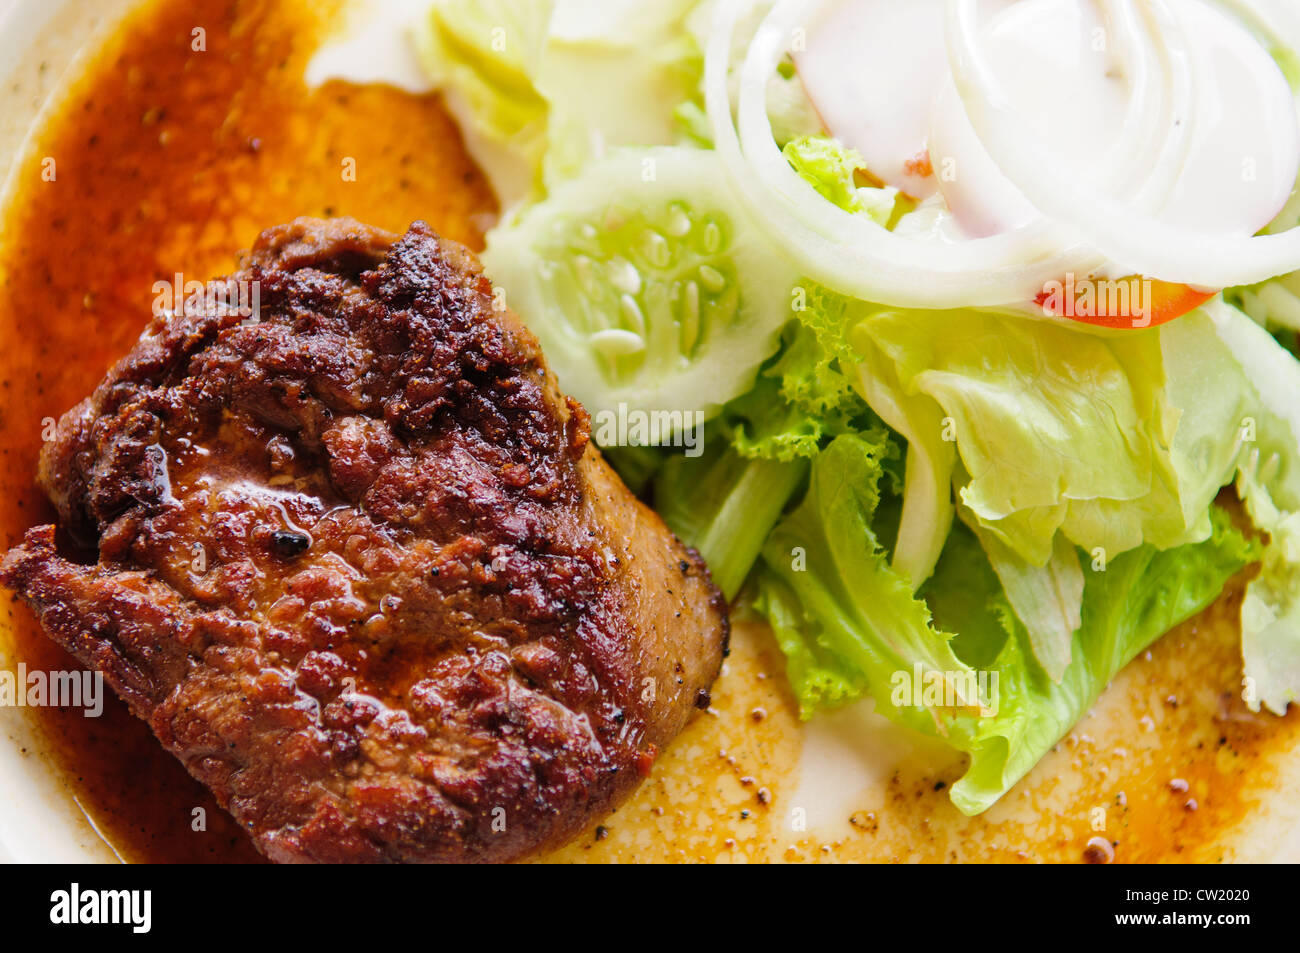 Grilled beef steak with vegetables - Stock Image